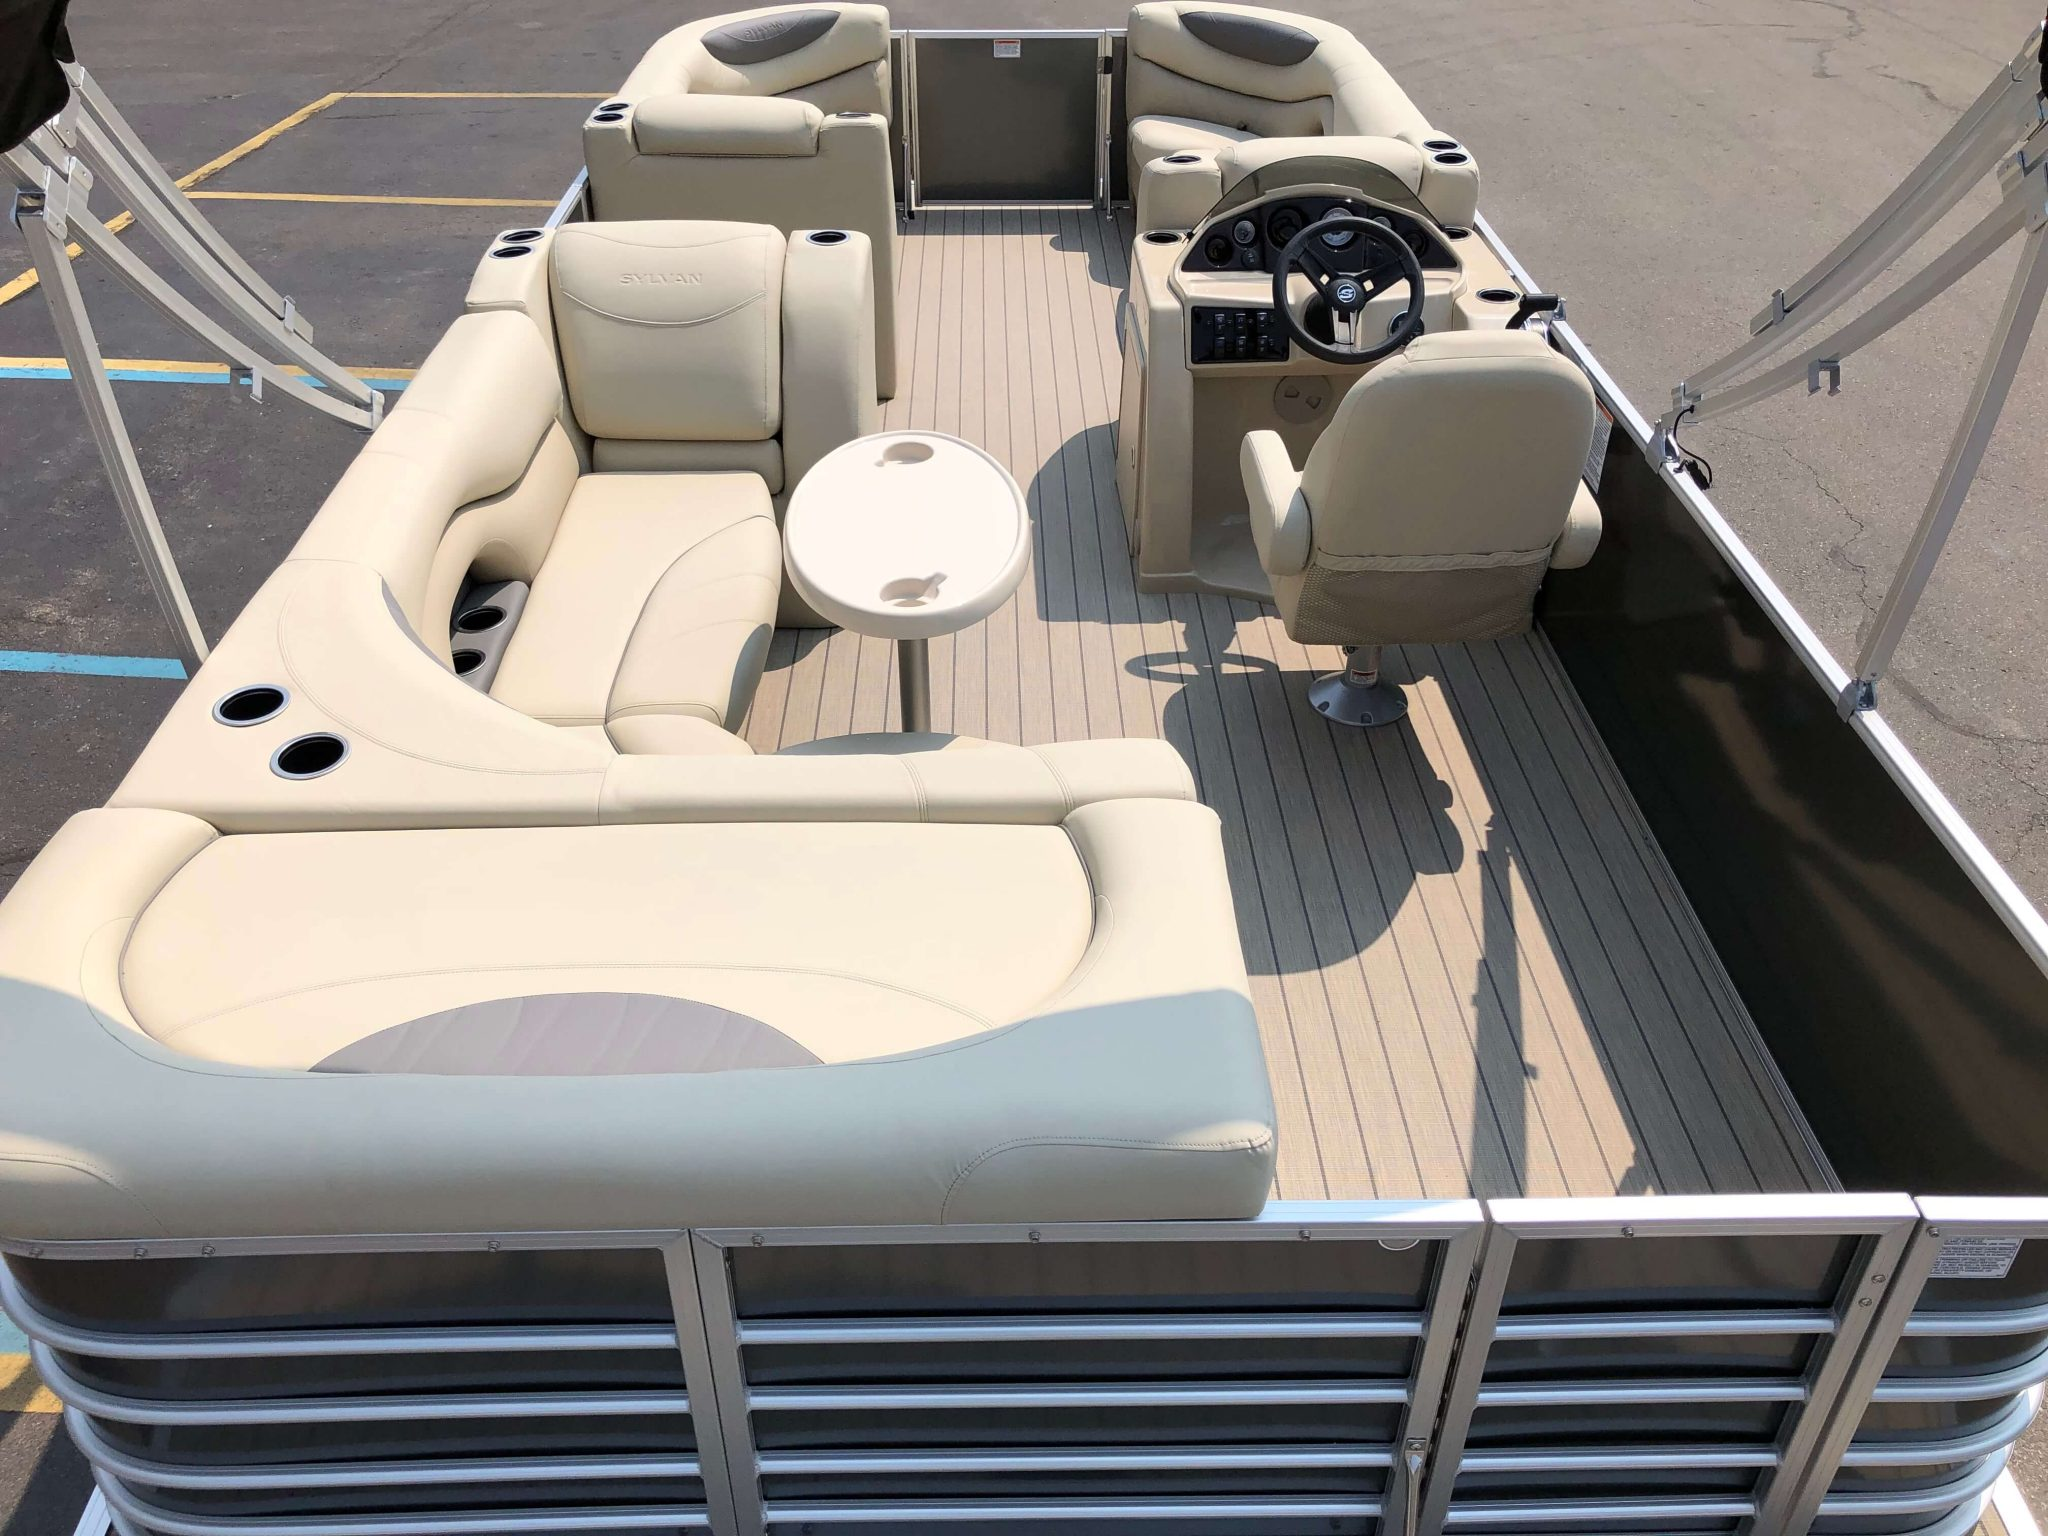 2019 Sylvan 8522 Cruise Carbon Pontoon Boat Layout 2